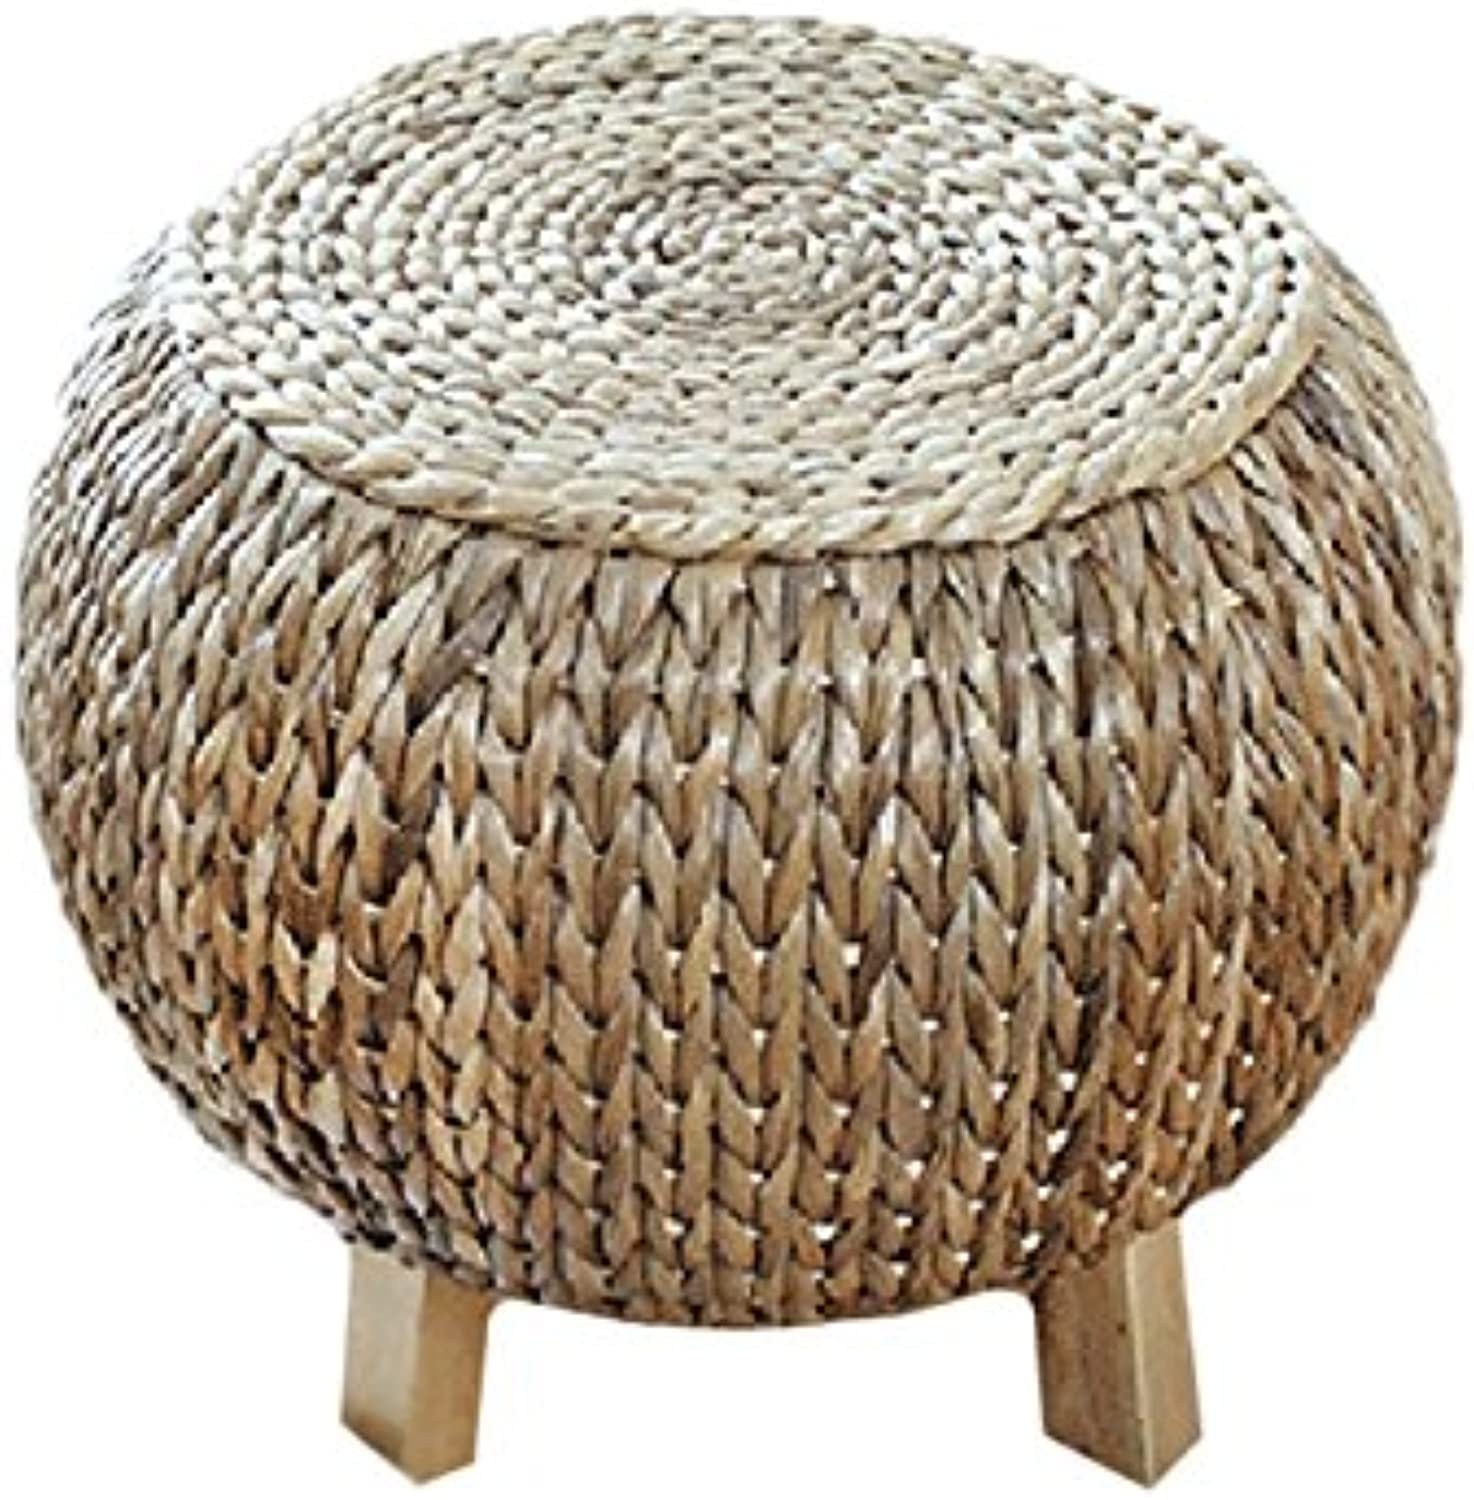 Straw Rattan Sitting Stool Footstool Foyer Change shoes Chair Rattan Round Stool()